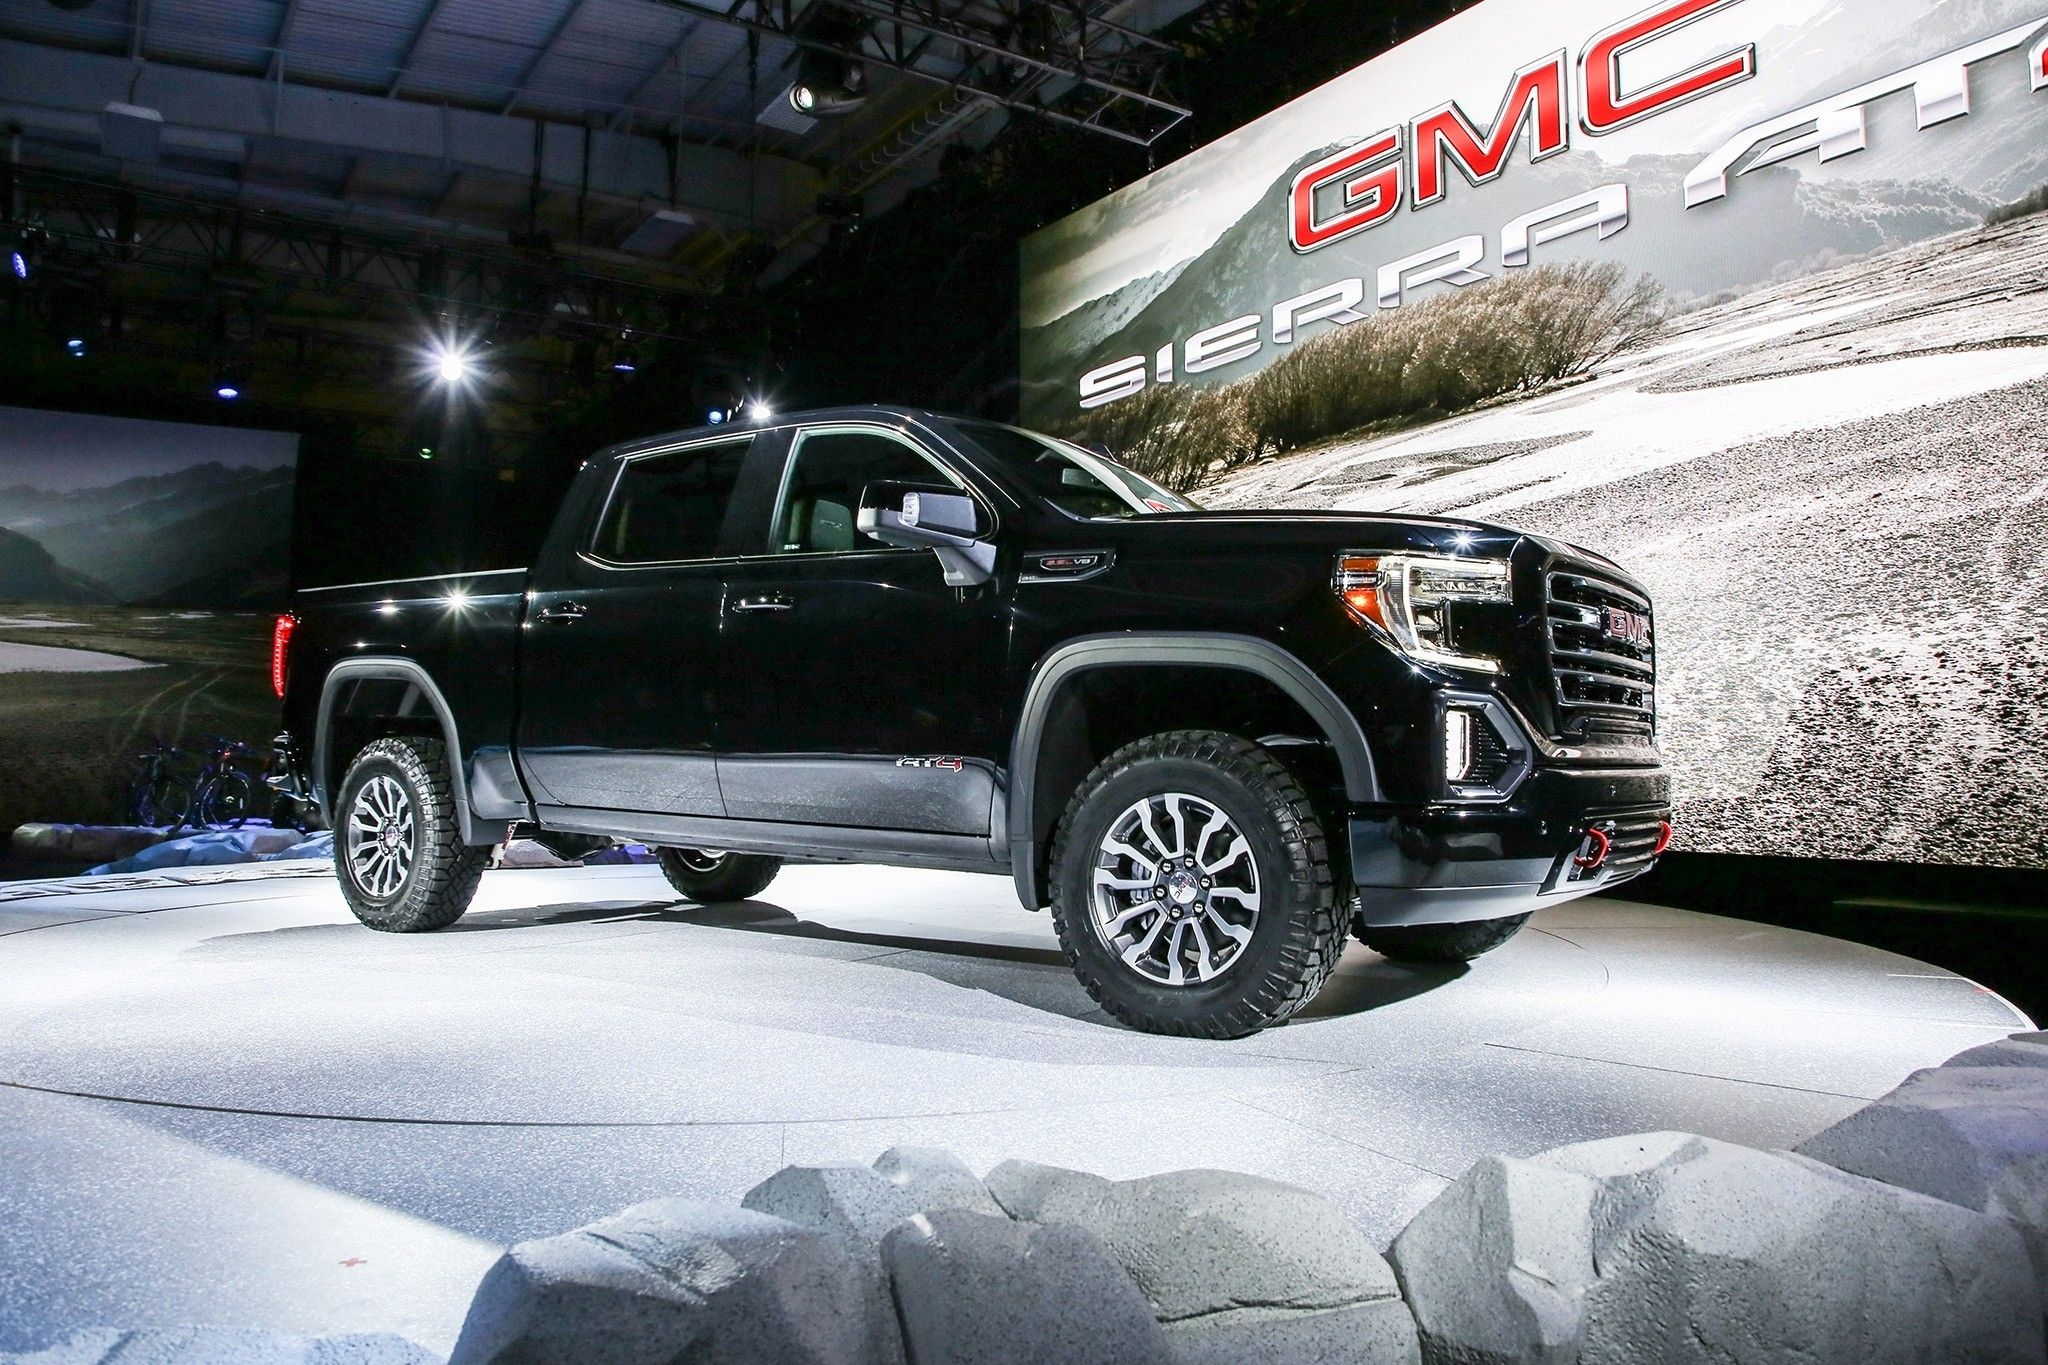 2019 Gmc Sierra 2500hd First Drive Car Gallery Gmc First Drive Gmc Sierra